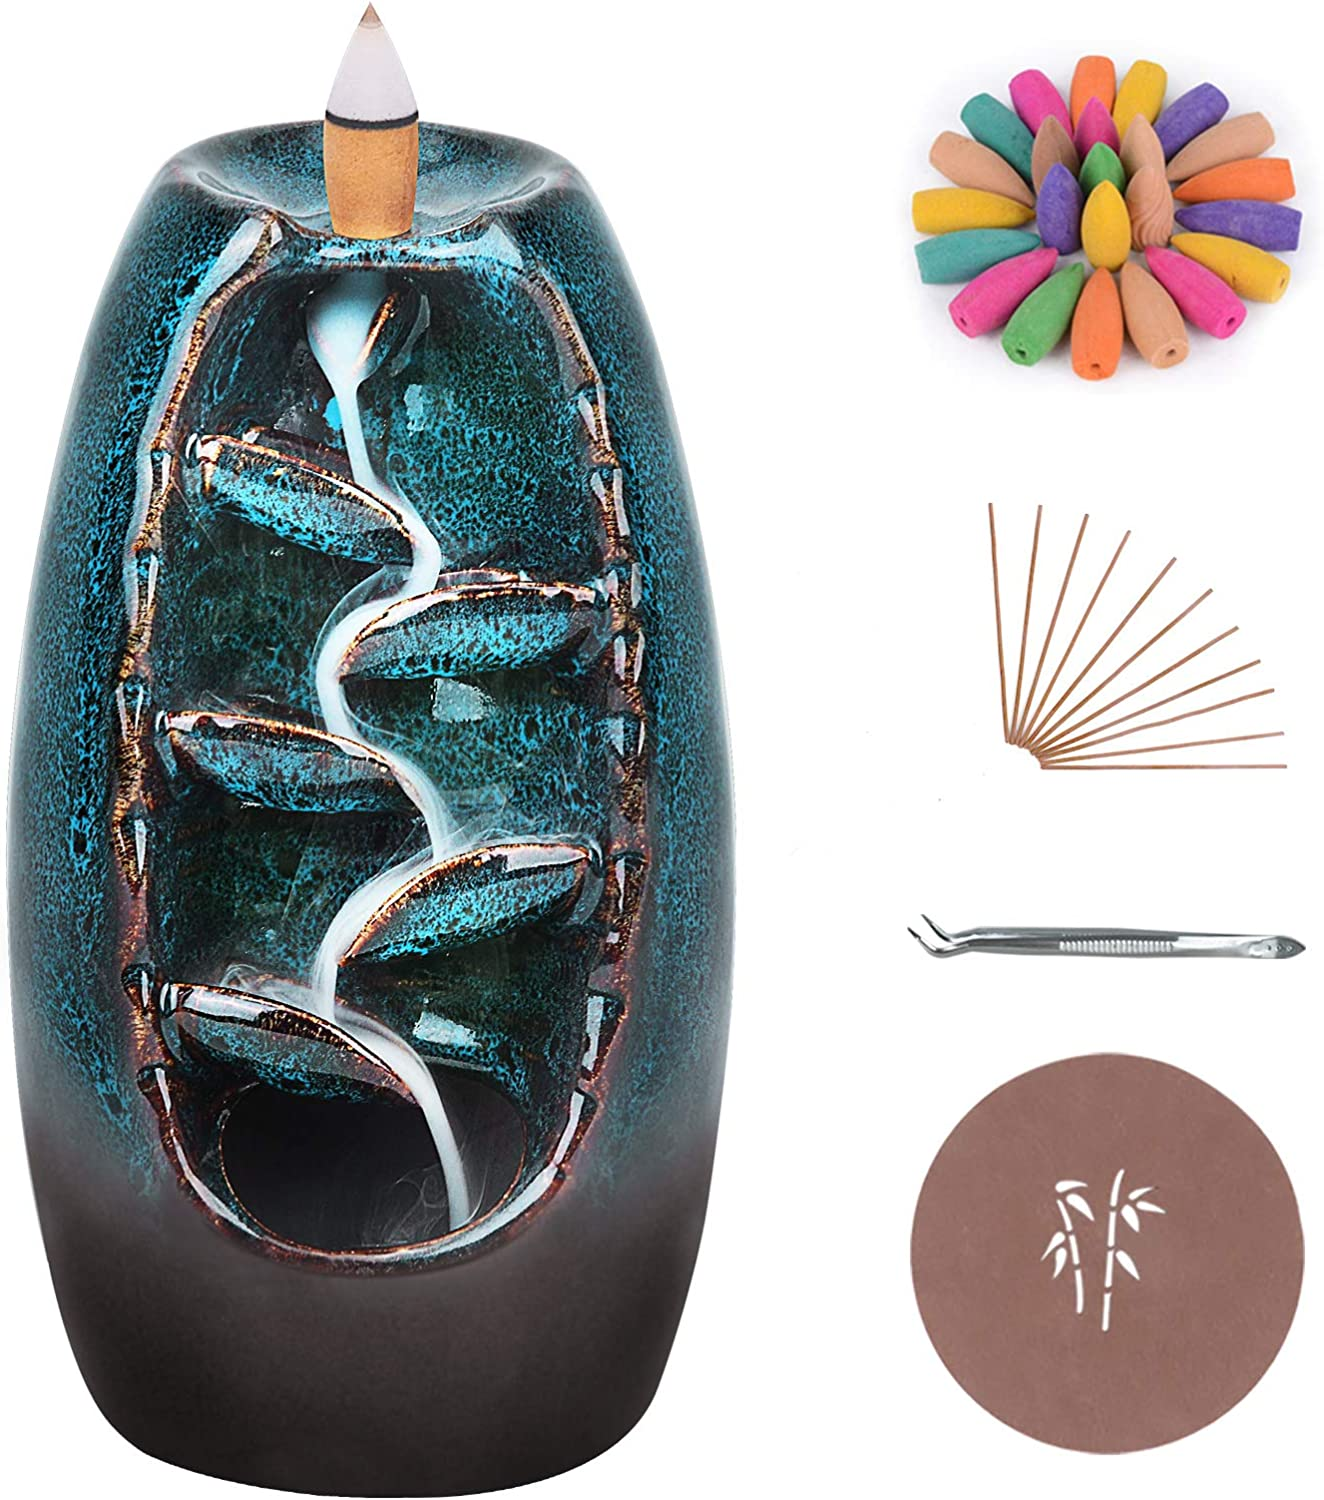 Ronlap Backflow Incense Burner, Ceramic Waterfall Smoke Incense Holder with 120 Upgraded Incense Cones+30 Incense Sticks+1 Tweezer+1 Mat, for Aromatherapy Meditation Home Decorations, Blue